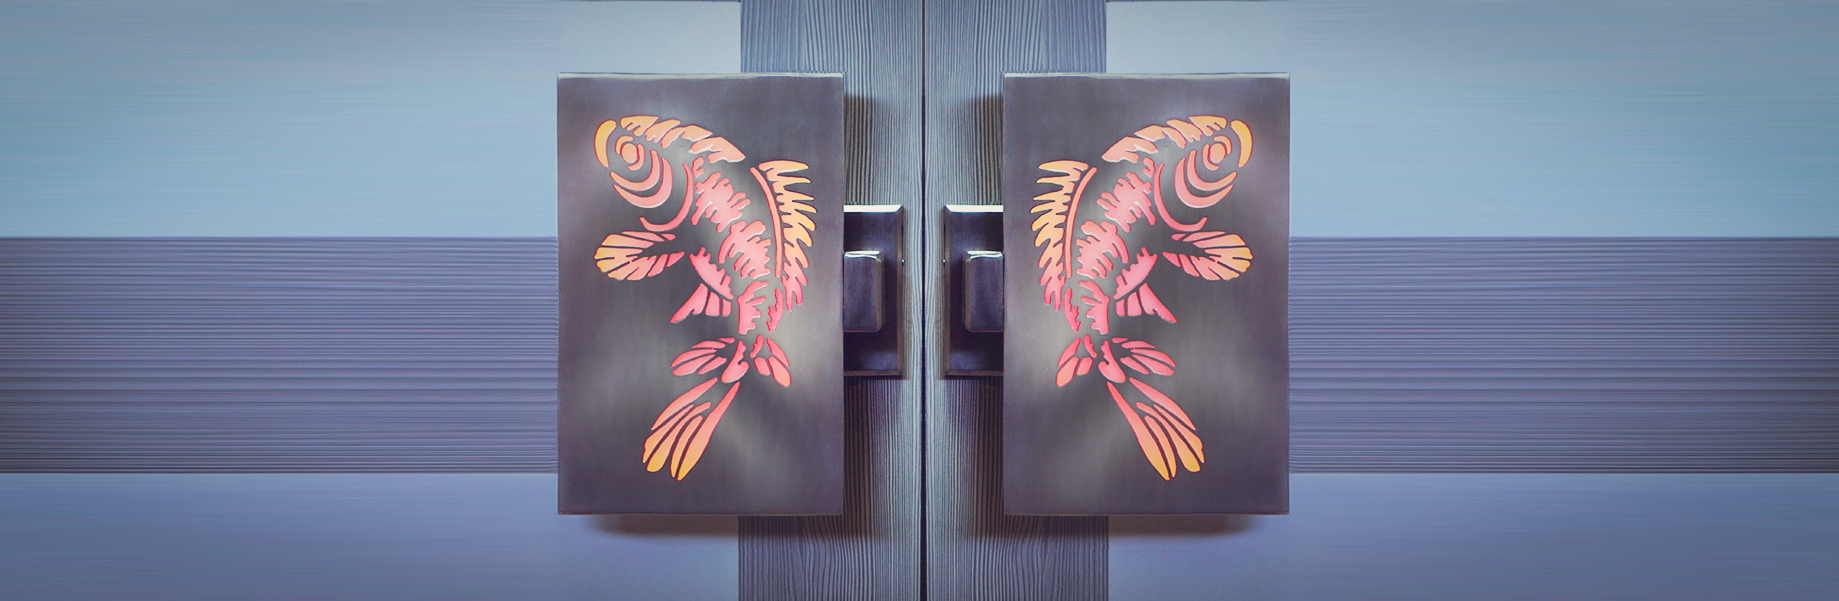 ILLUMINATED FISH DOOR HANDLES  Artistic LED illuminated door handles for bars, restaurants or homes   Fish Door Handles